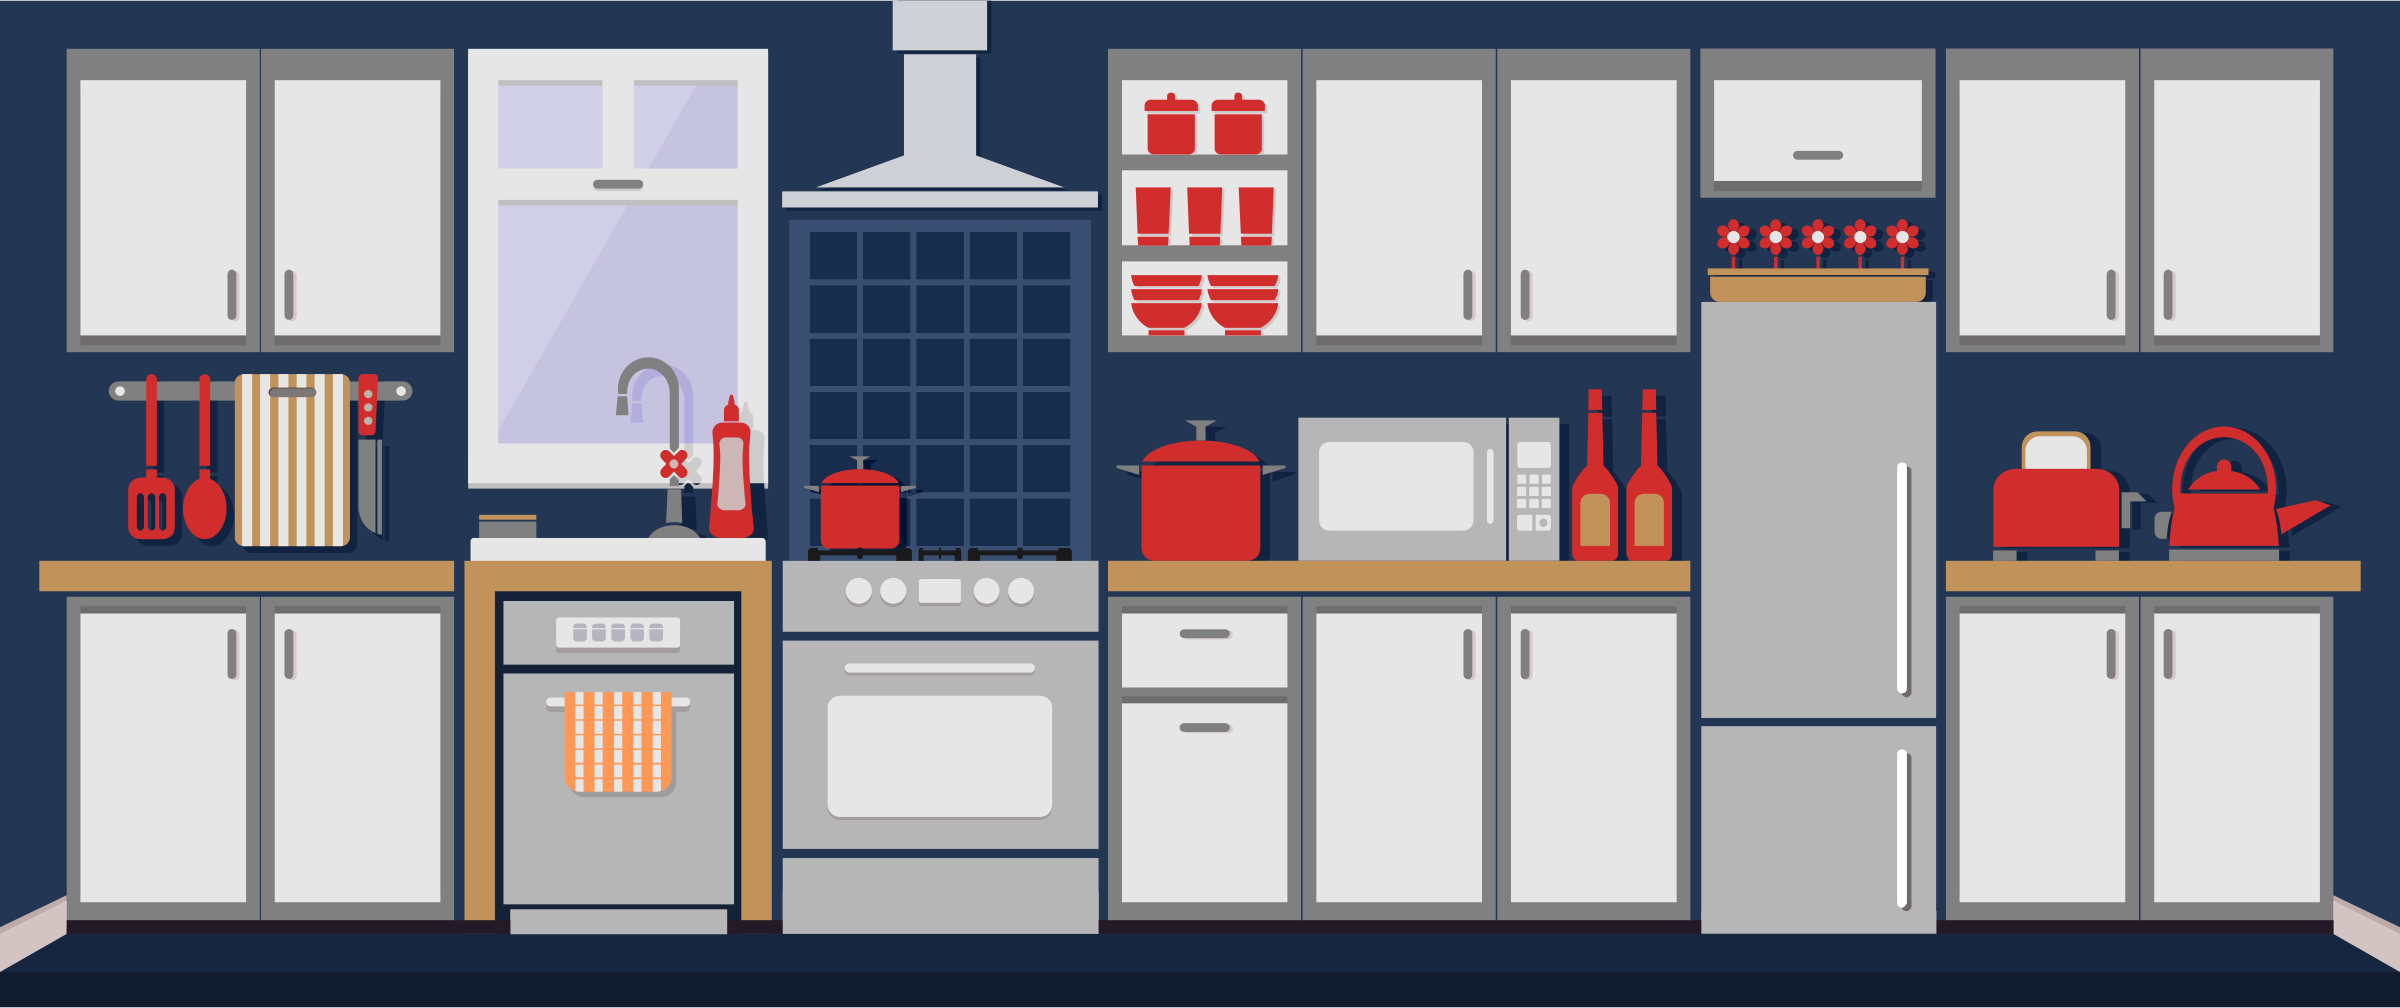 Simple Kitchen Remixed With Flat Colors And Shadows